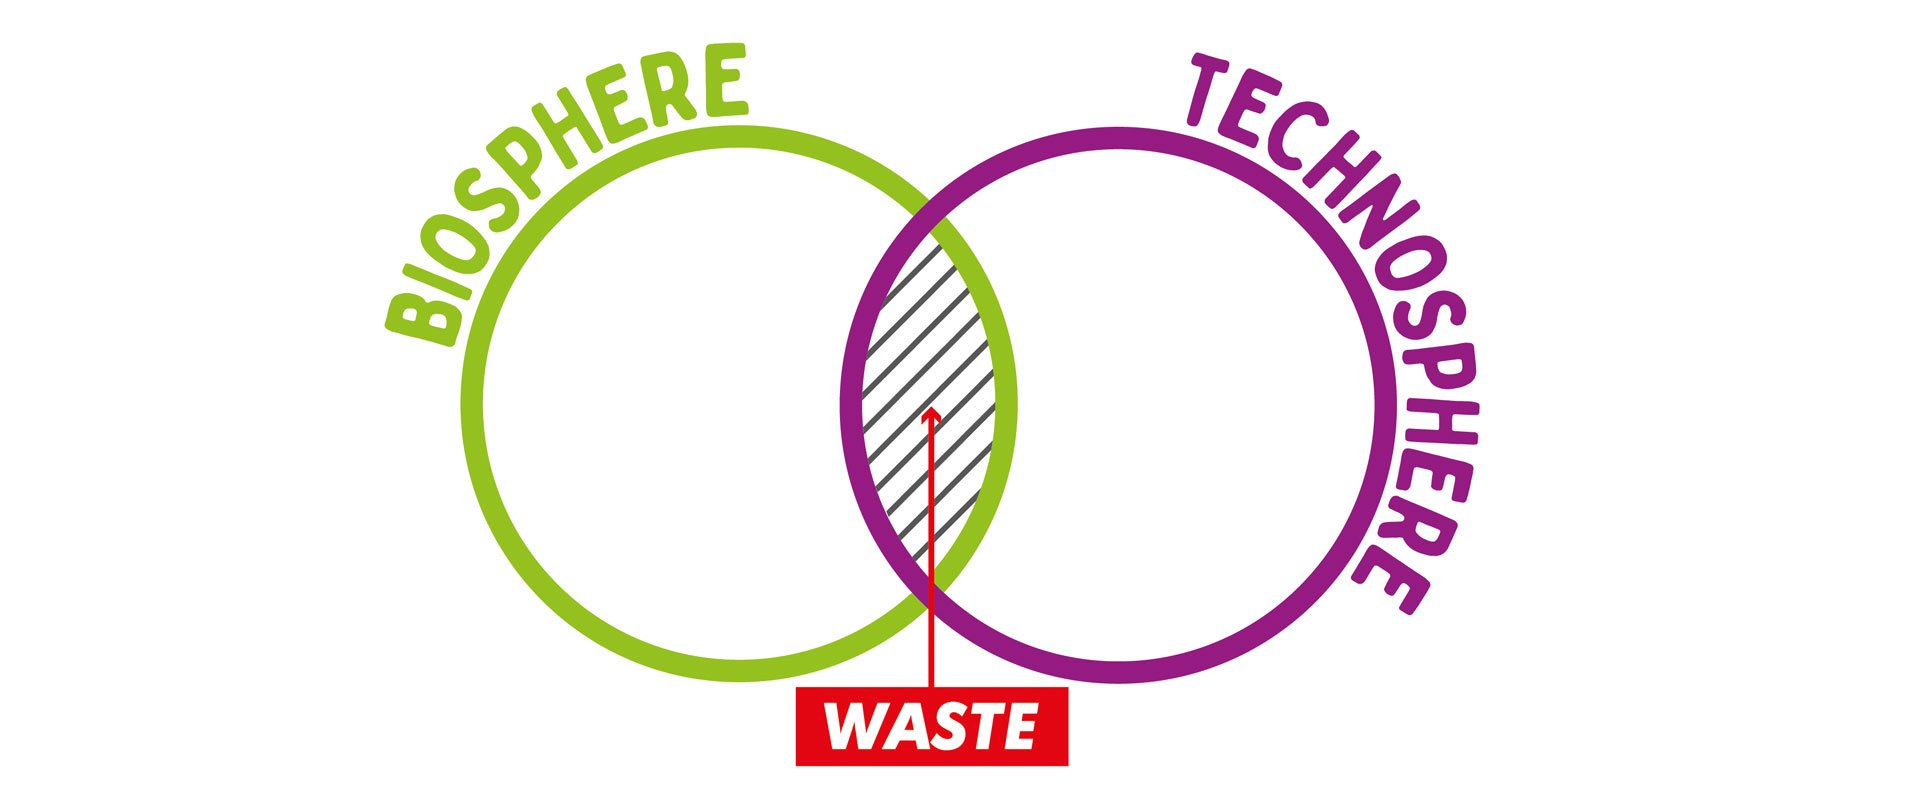 environment friendly red paddle co biosphere and technosphere diagram